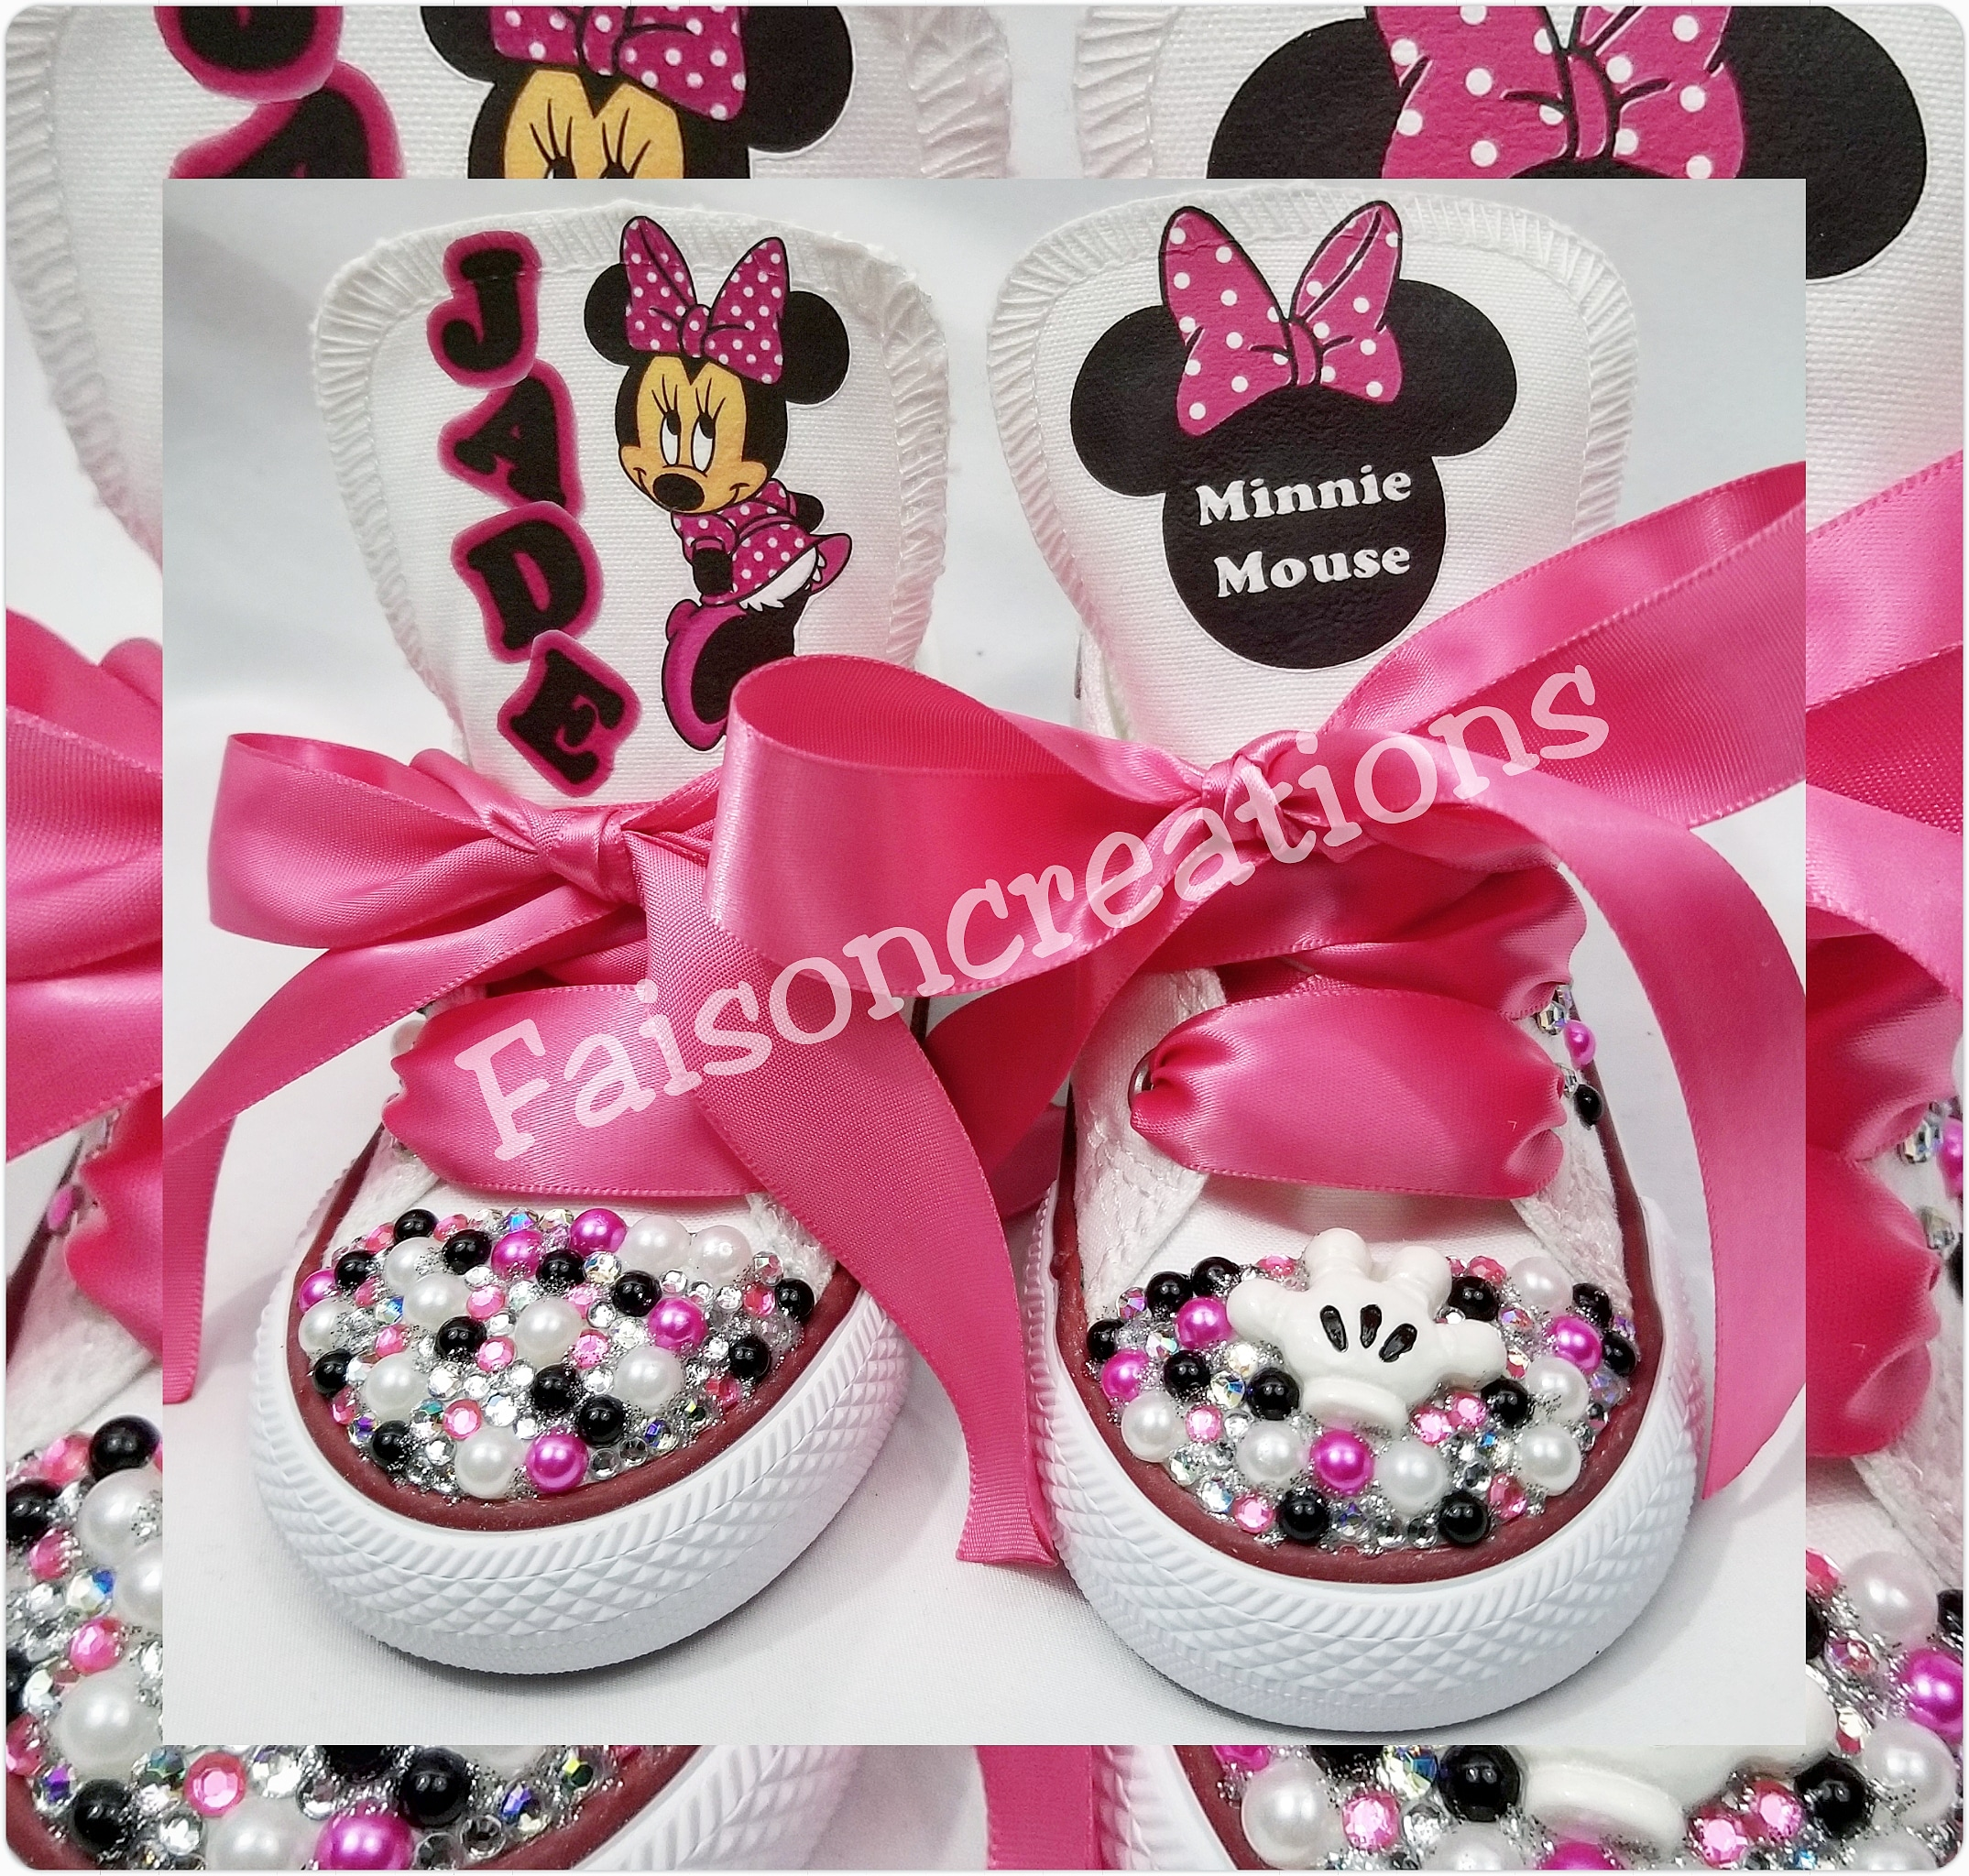 23fbbf40f5ac Toddler Custom Minnie Mouse Converse · FaisonCreations · Online ...